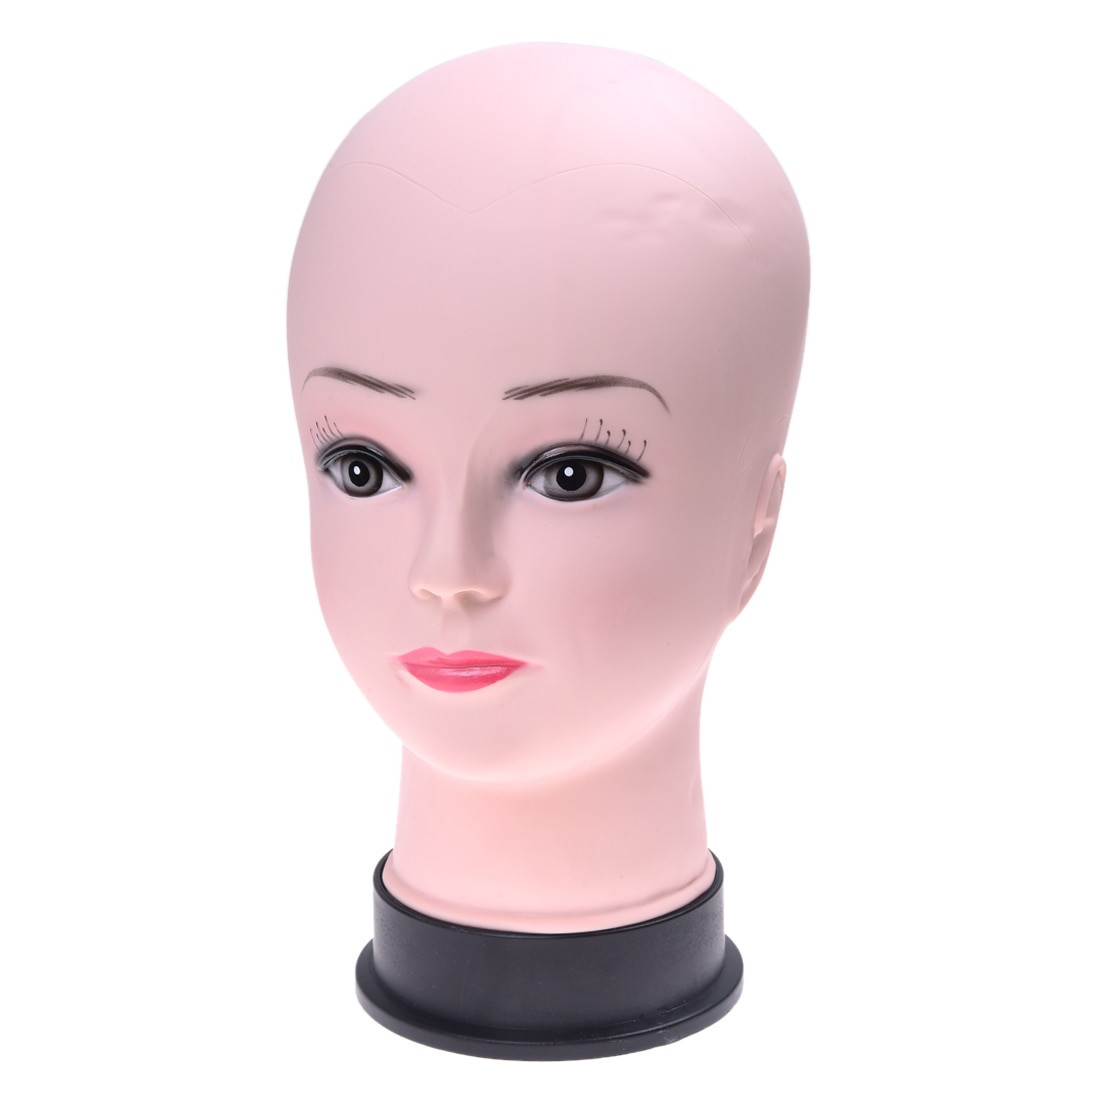 lady head vases of bald mannequin head with clamp female mannequin head for wigs making with bald mannequin head with clamp female mannequin head for wigs making hats display cosmetology manikin head